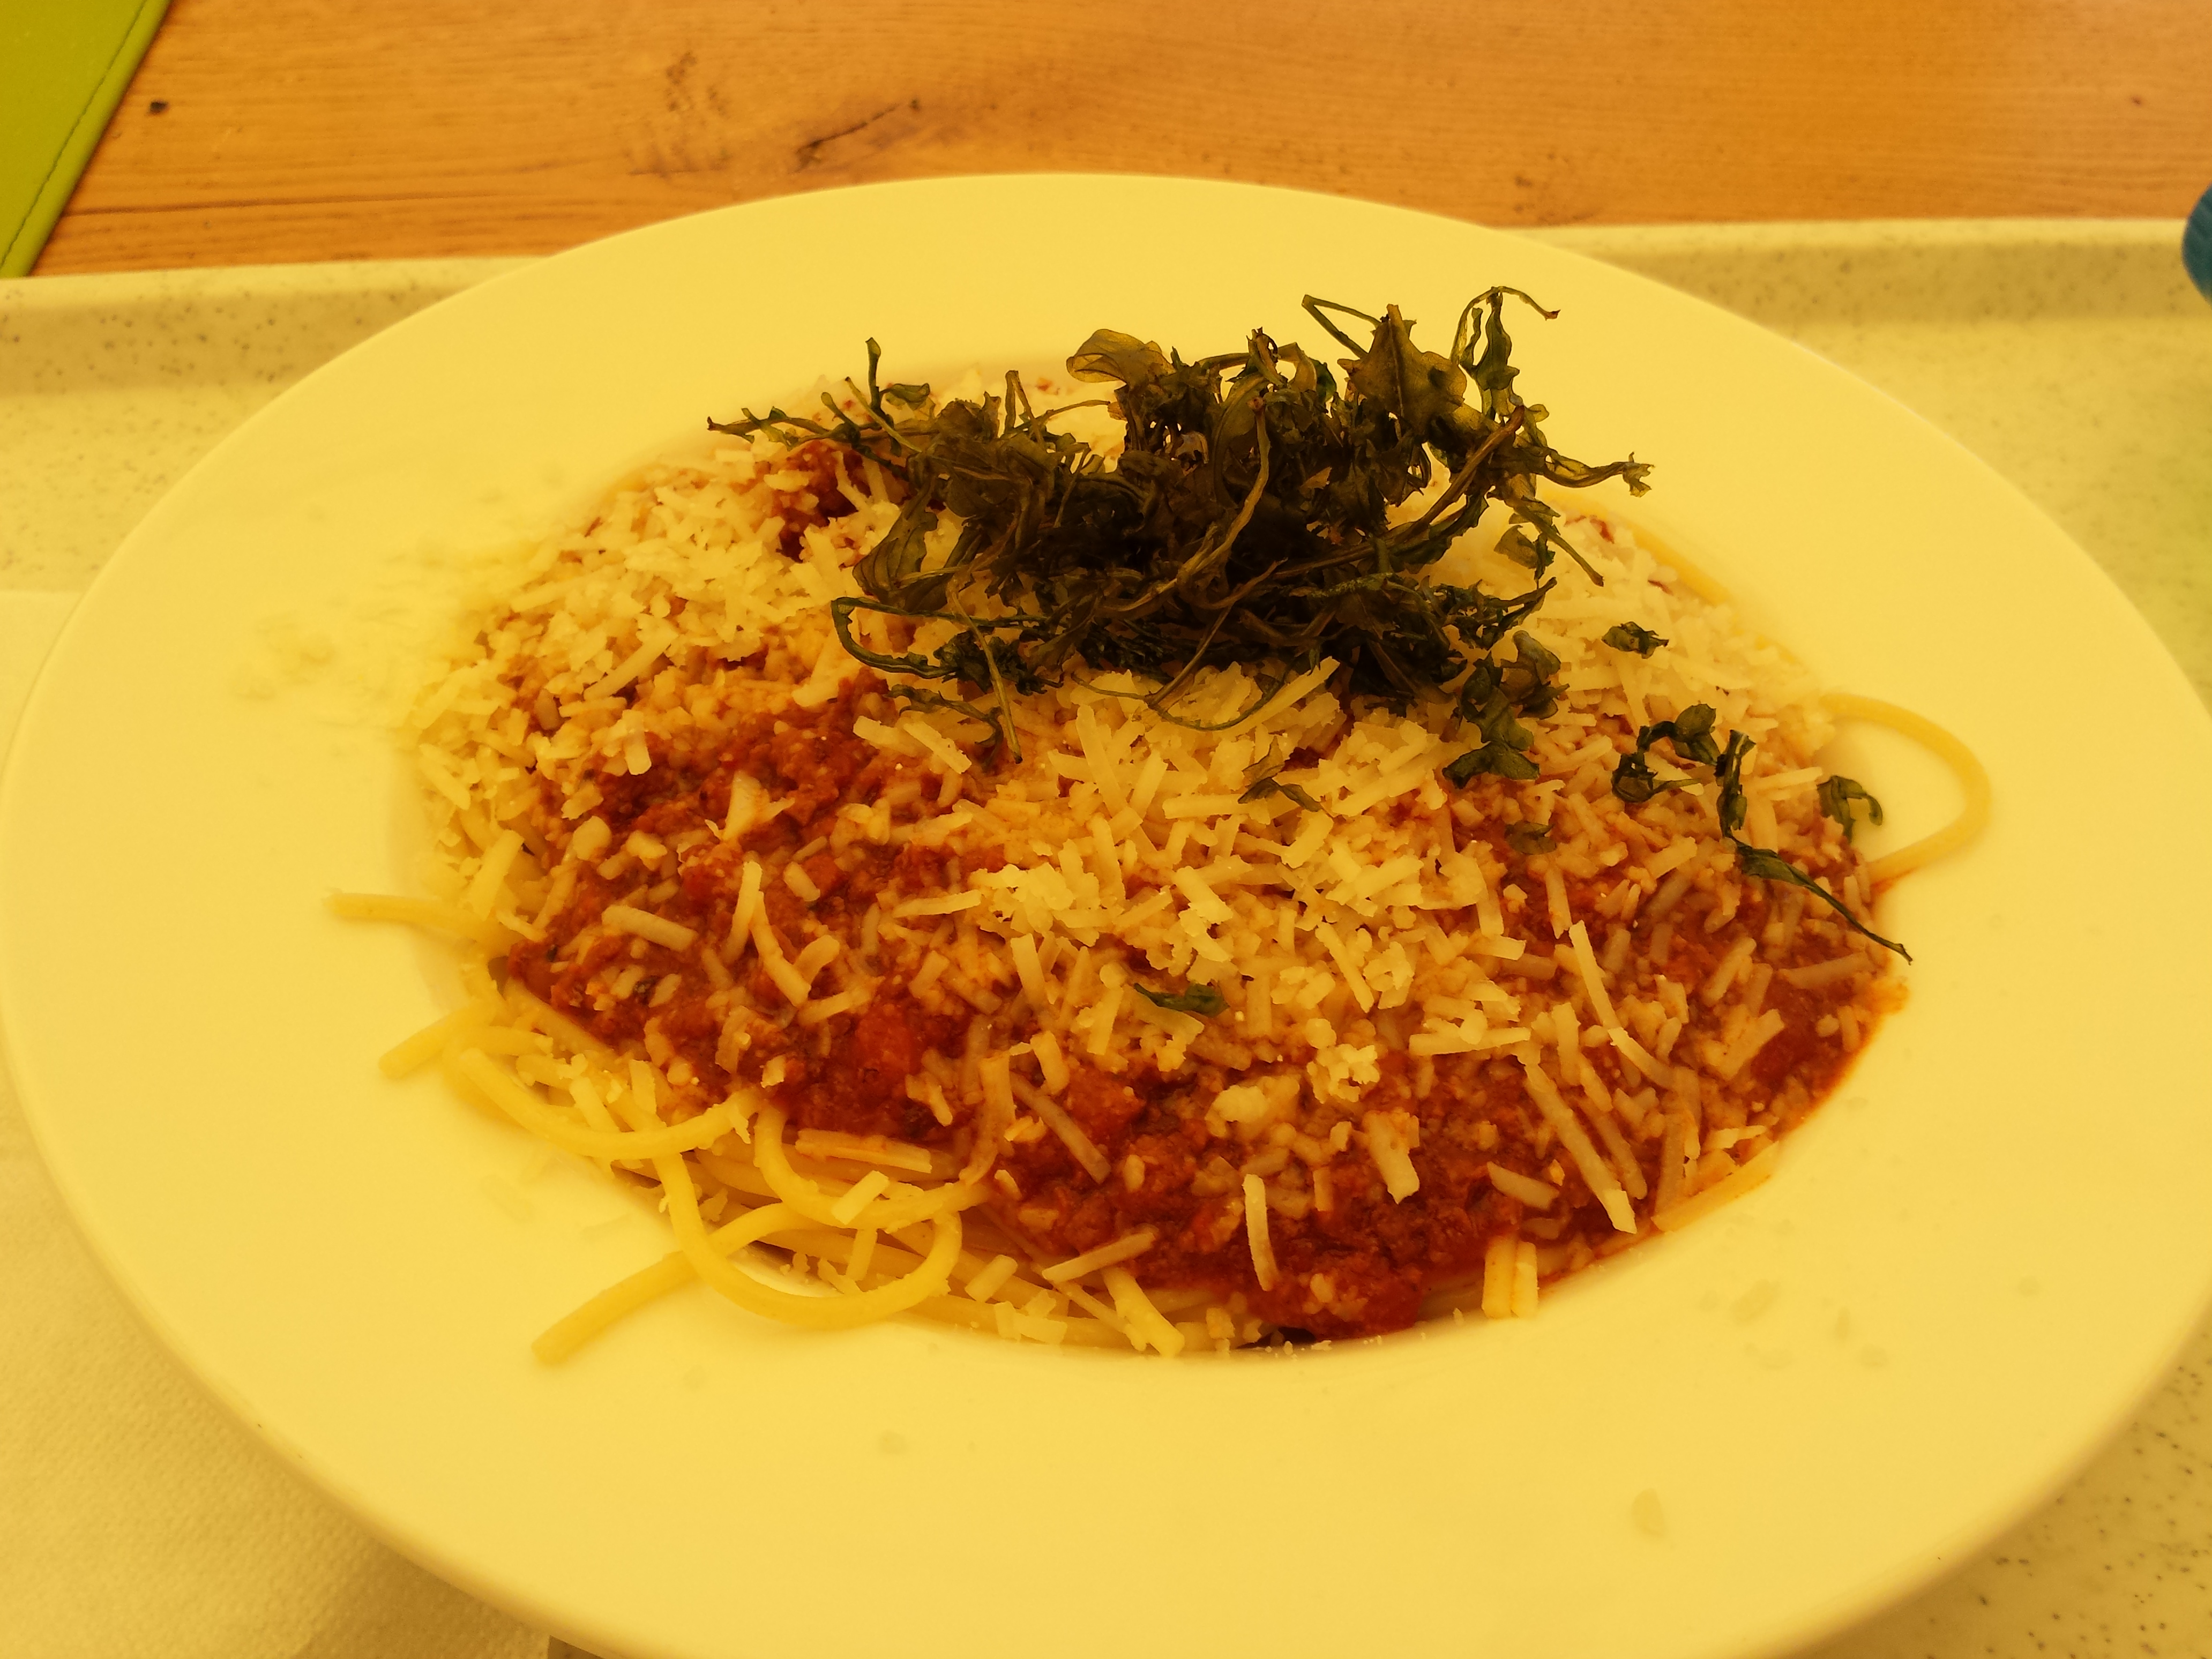 https://foodloader.net/Timber_2014-05-25_Spagetti_Bolognese.jpg